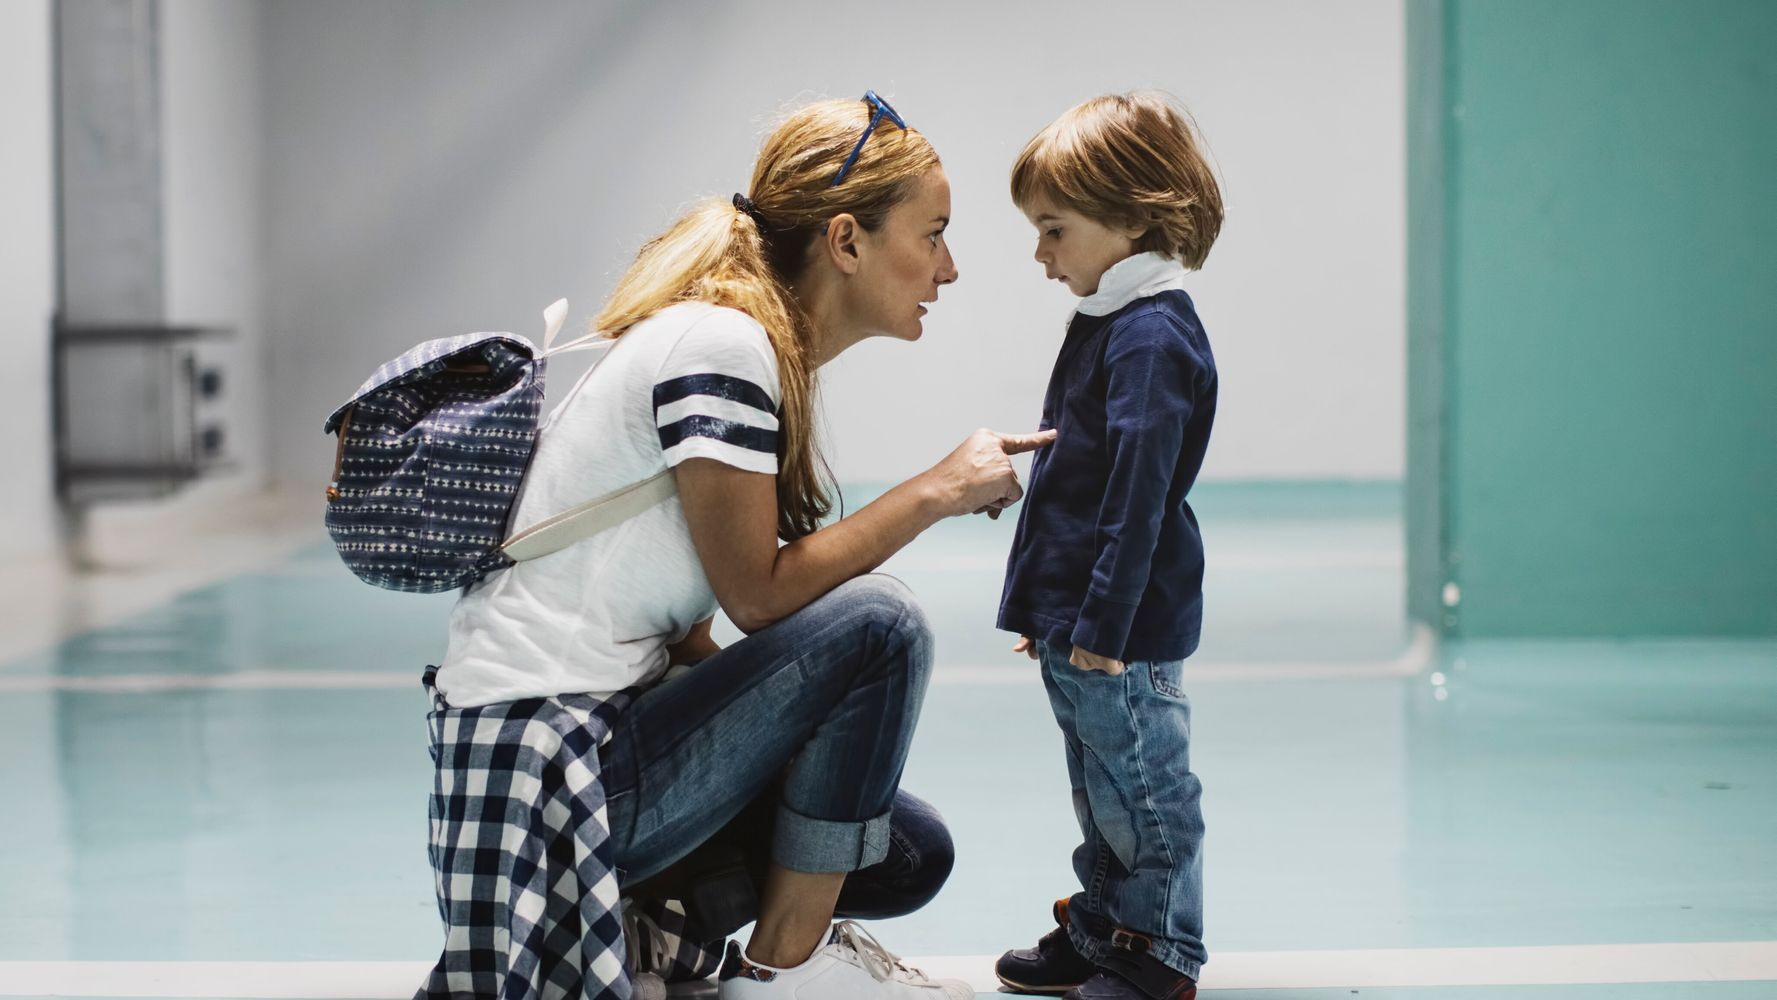 7 Signs You Were Raised By An Entitled Parent